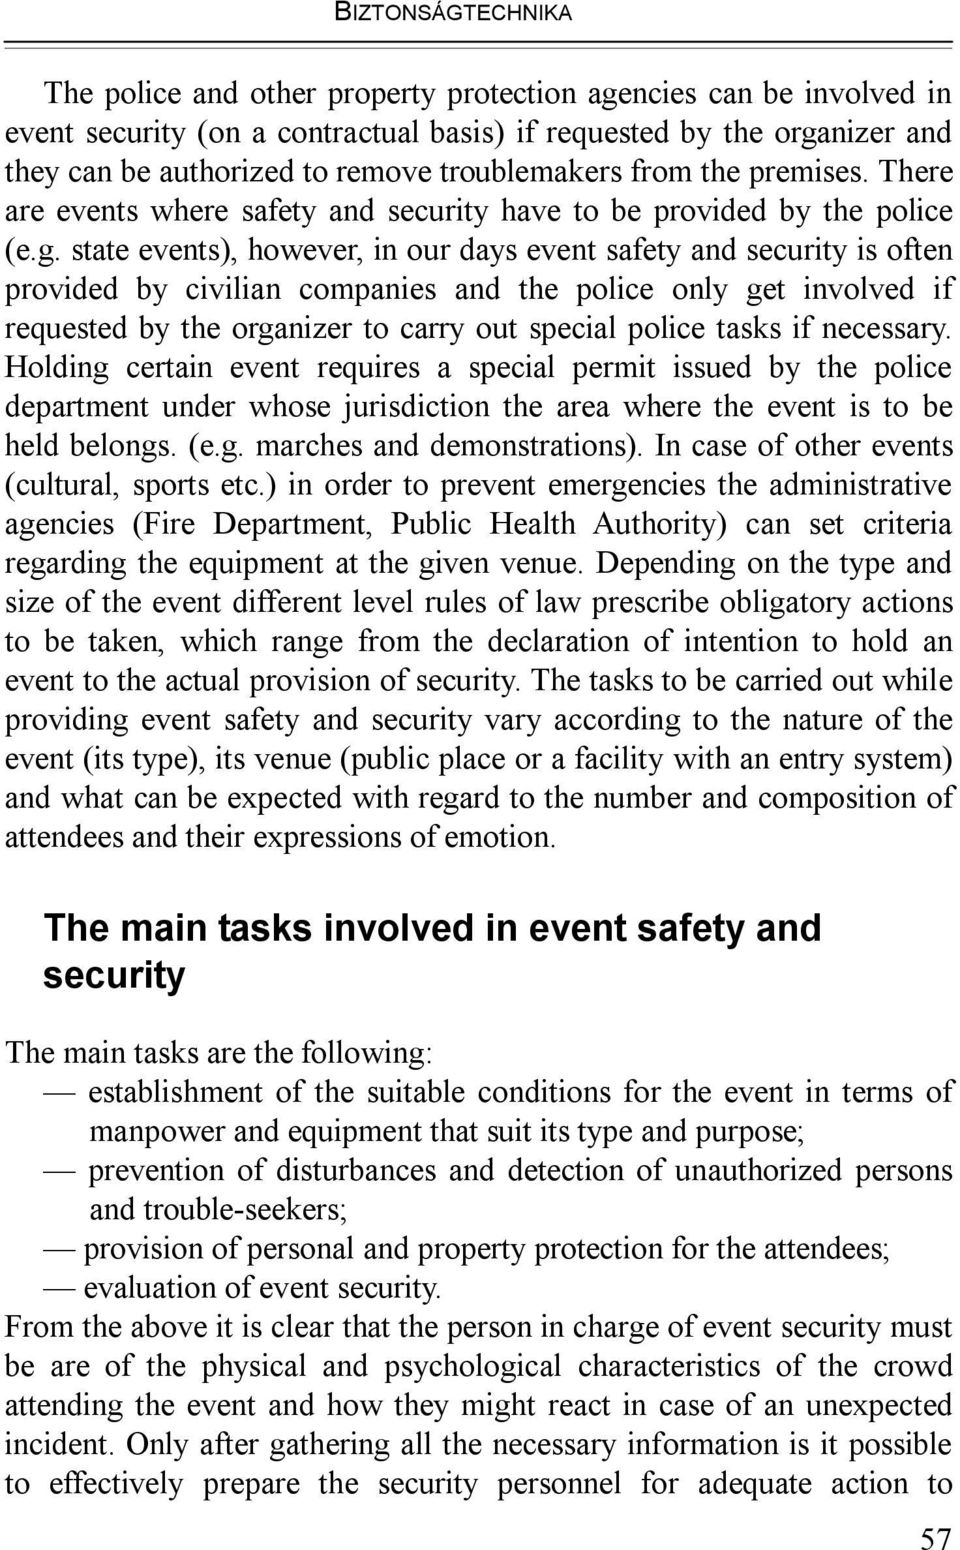 state events), however, in our days event safety and security is often provided by civilian companies and the police only get involved if requested by the organizer to carry out special police tasks